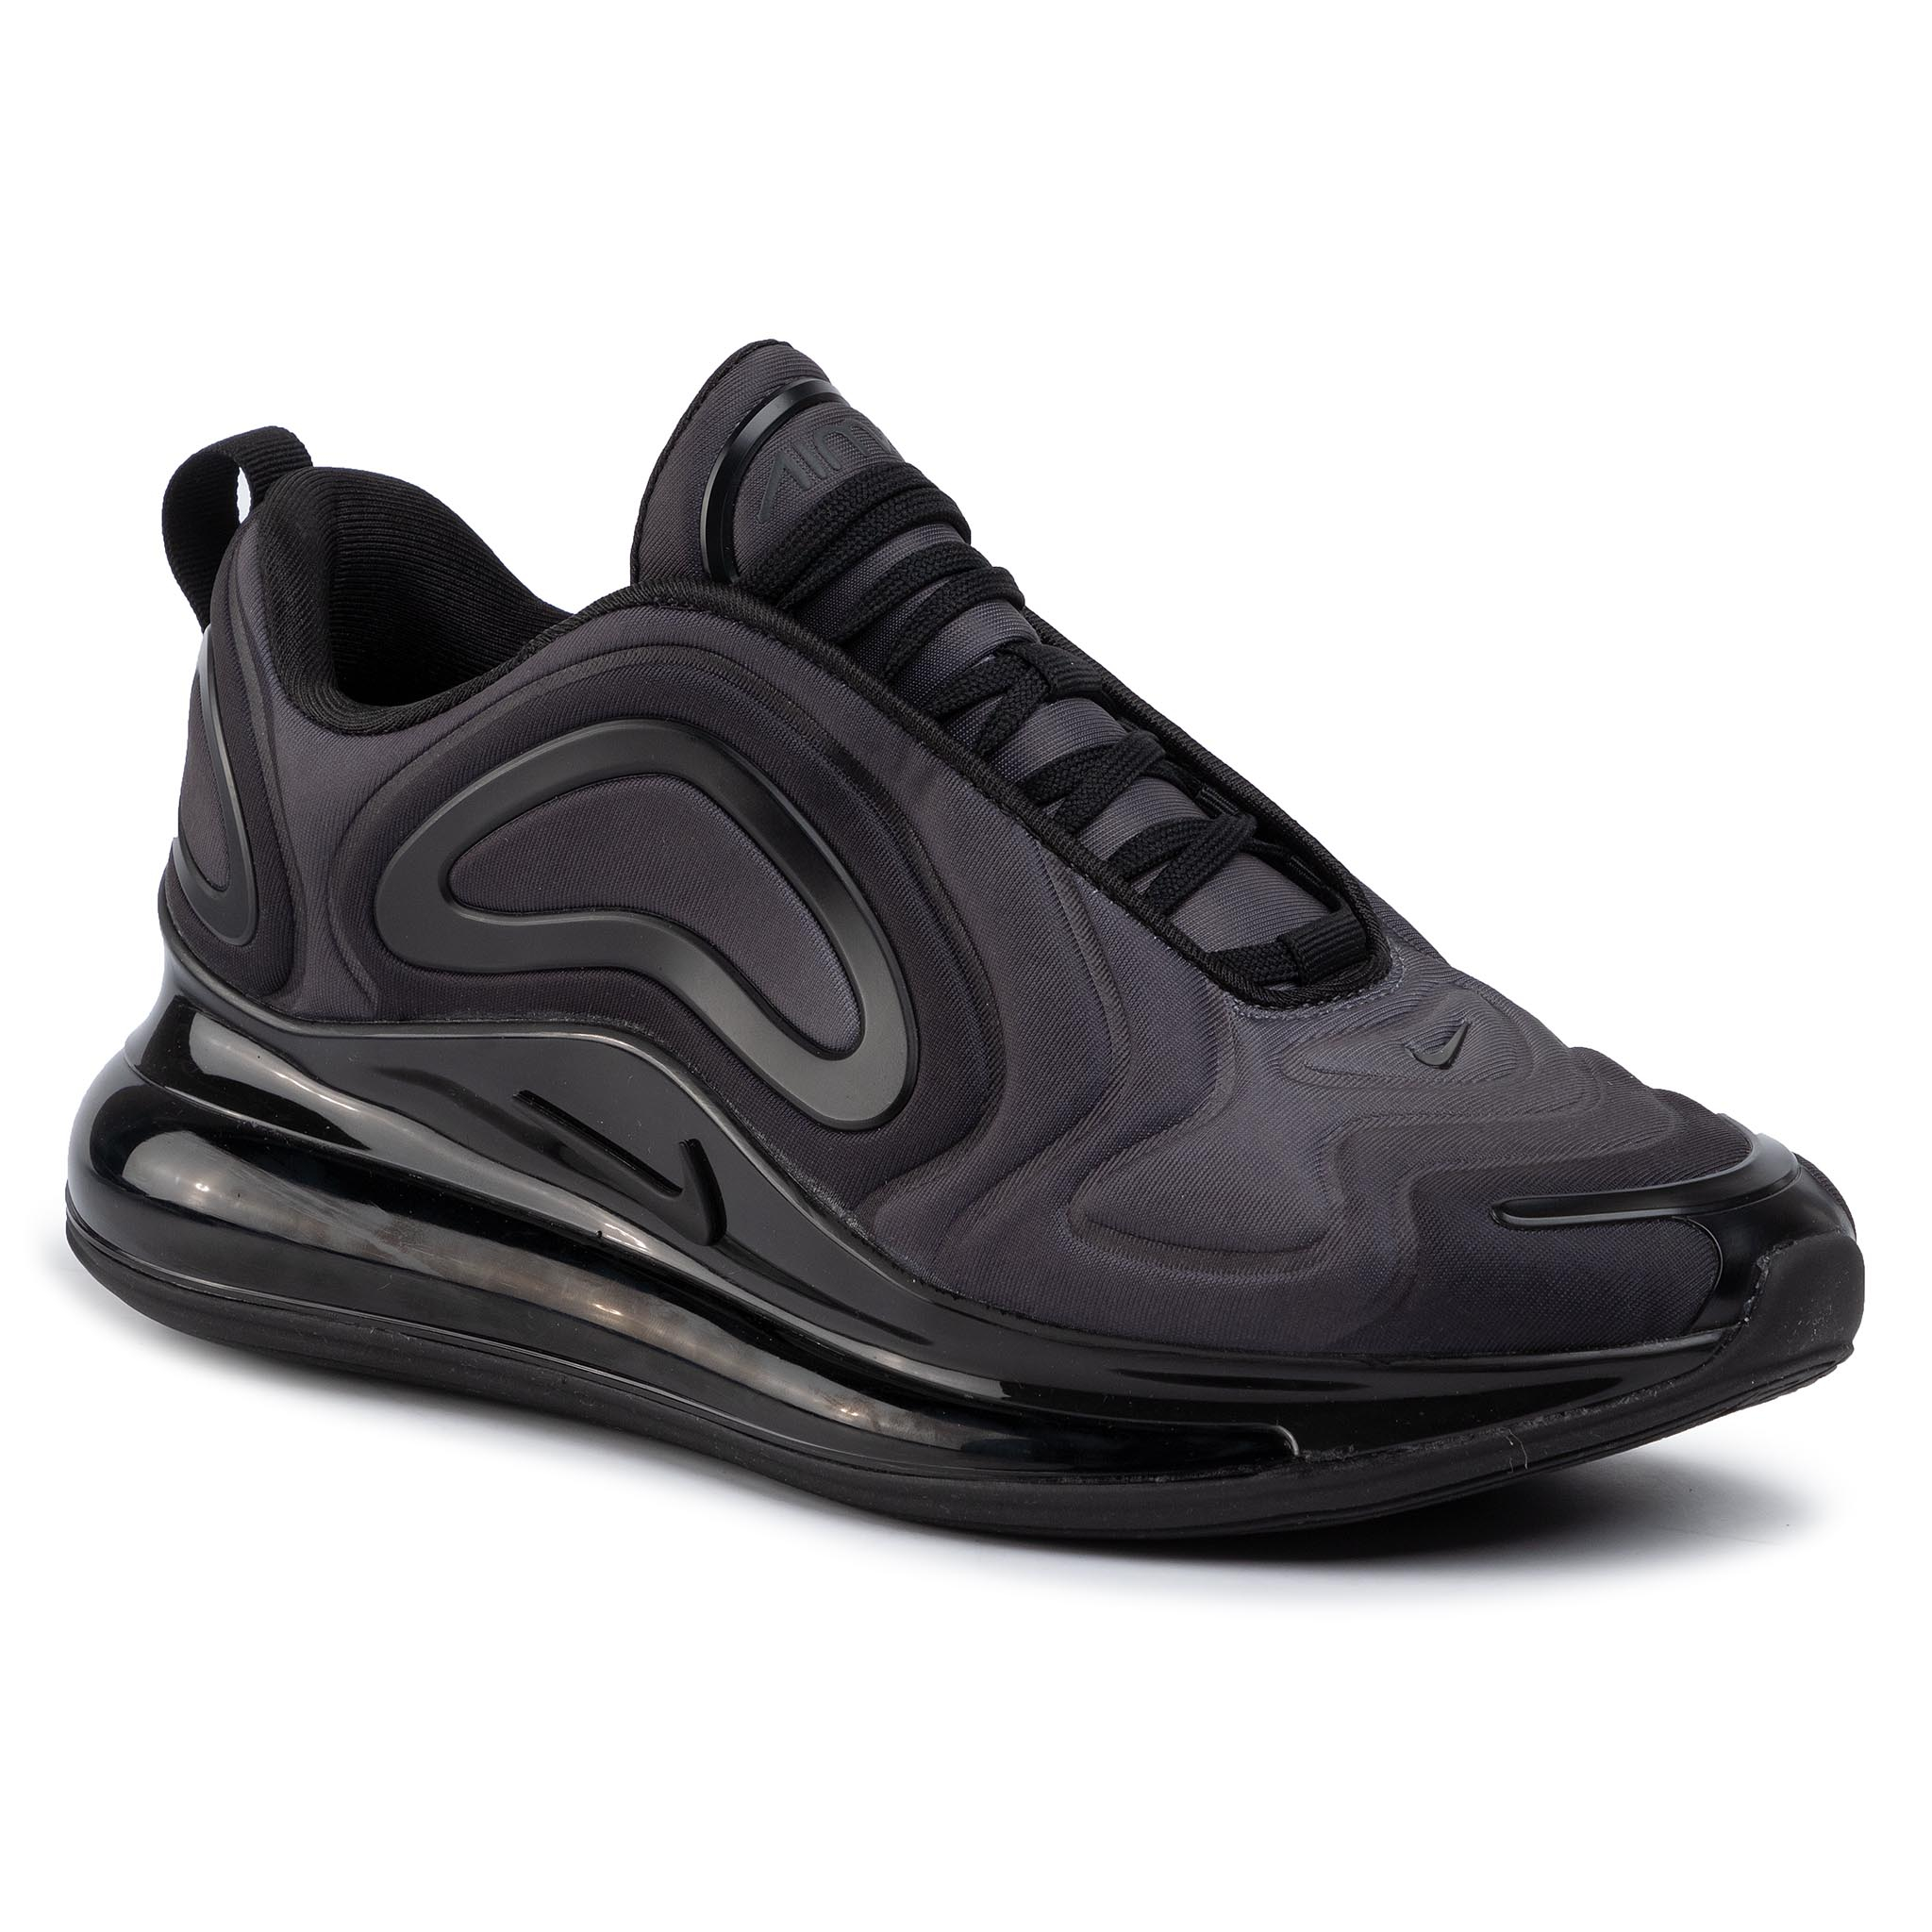 Pantofi NIKE - Air Max 720 AO2924 004 Black/Black Anthracite